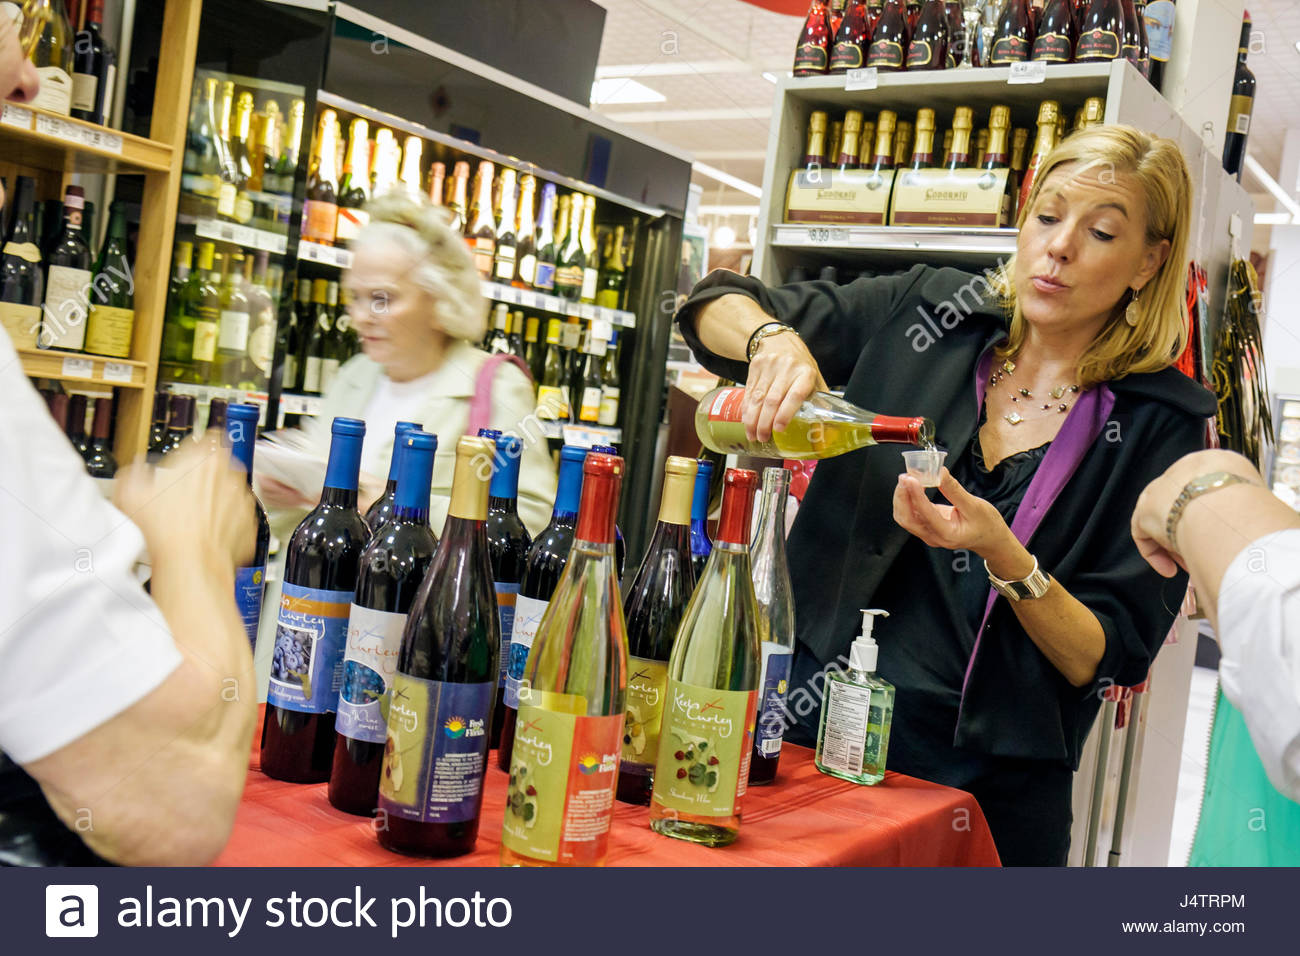 Palm Beach Florida Publix Grocery Store supermarket company business shopping groceries wine bottle free sample - Stock Image